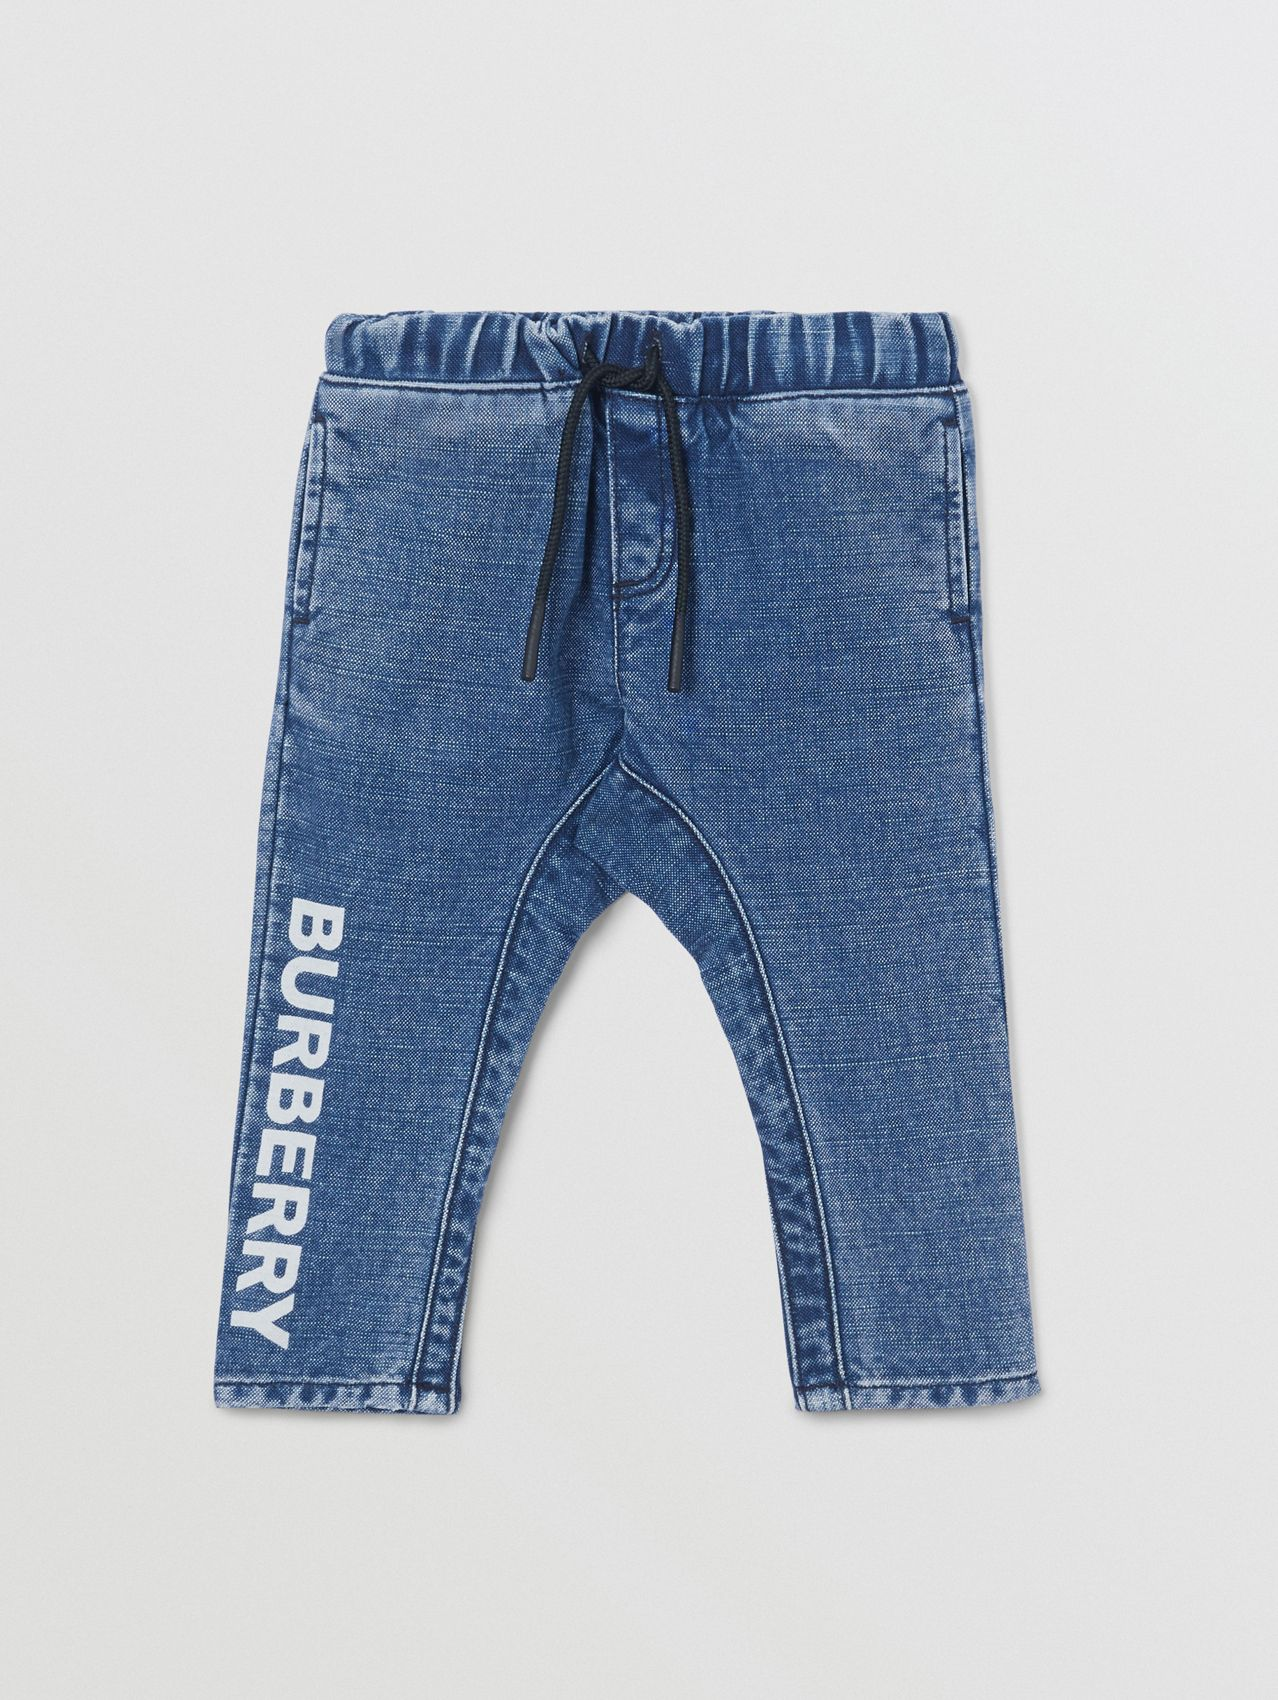 Logo Print Japanese Denim Jeans in Indigo